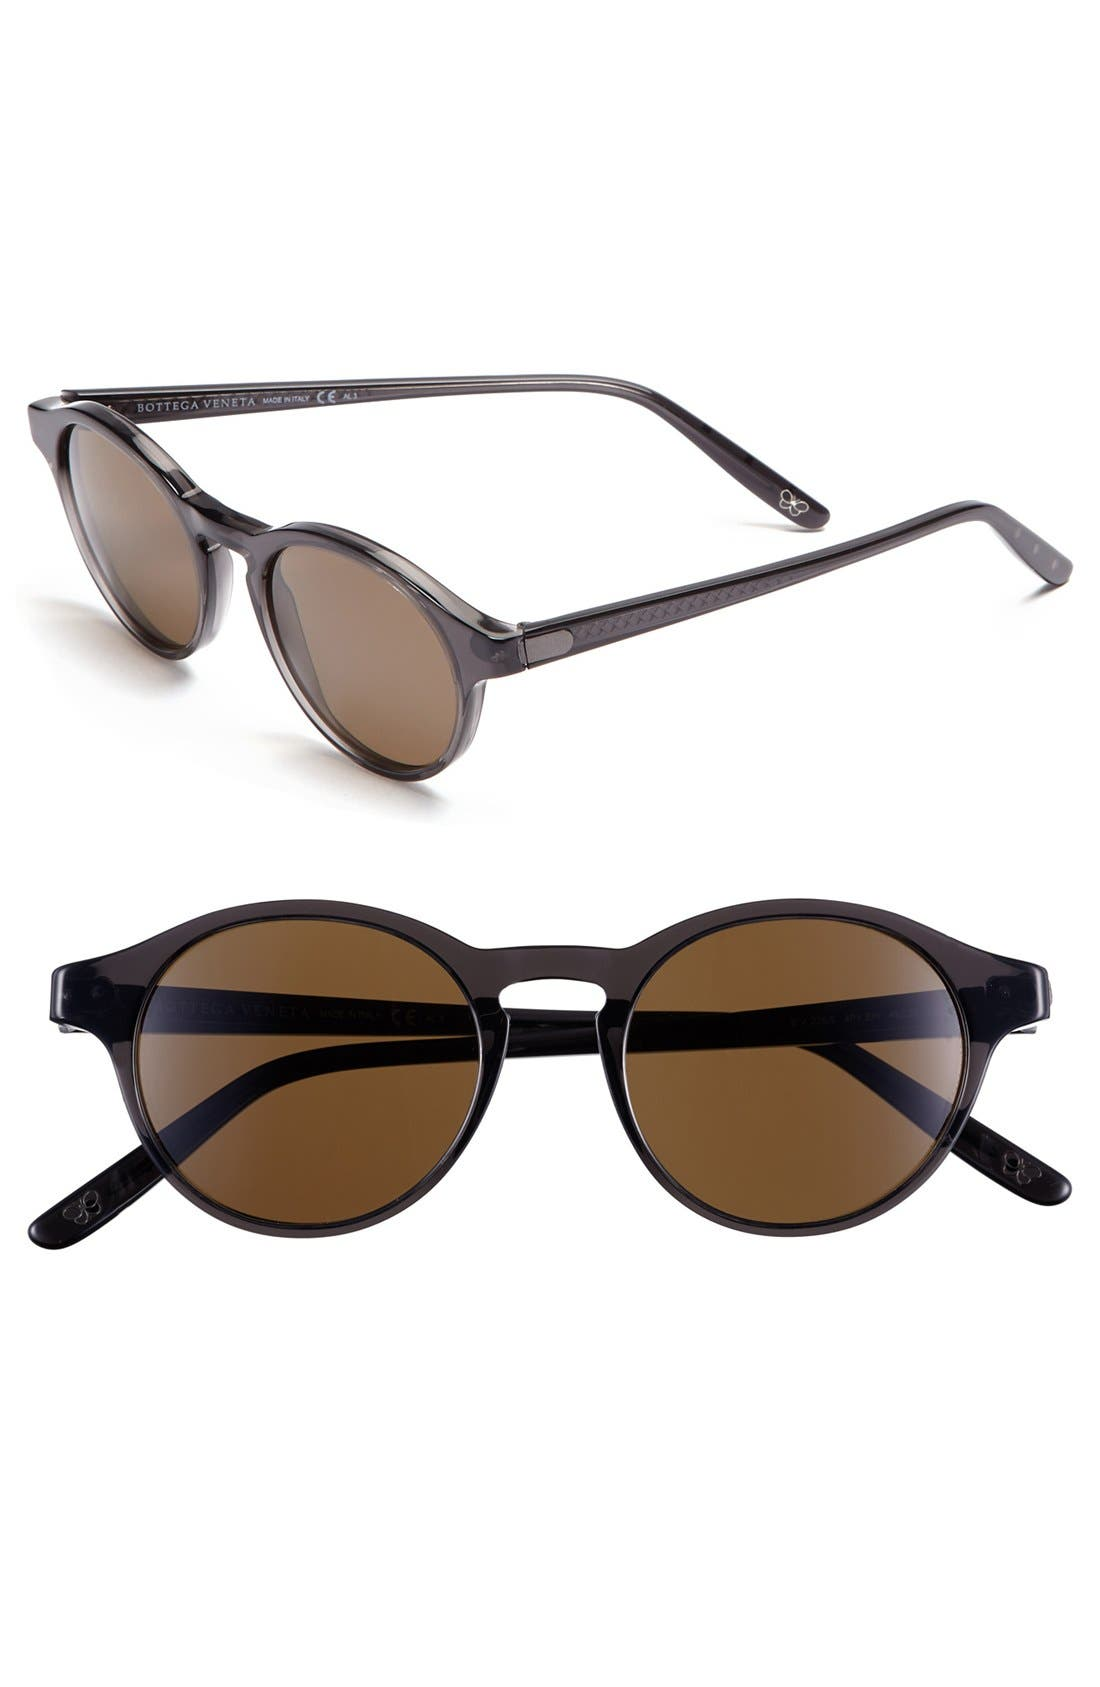 Alternate Image 1 Selected - Bottega Veneta 49mm Retro Sunglasses